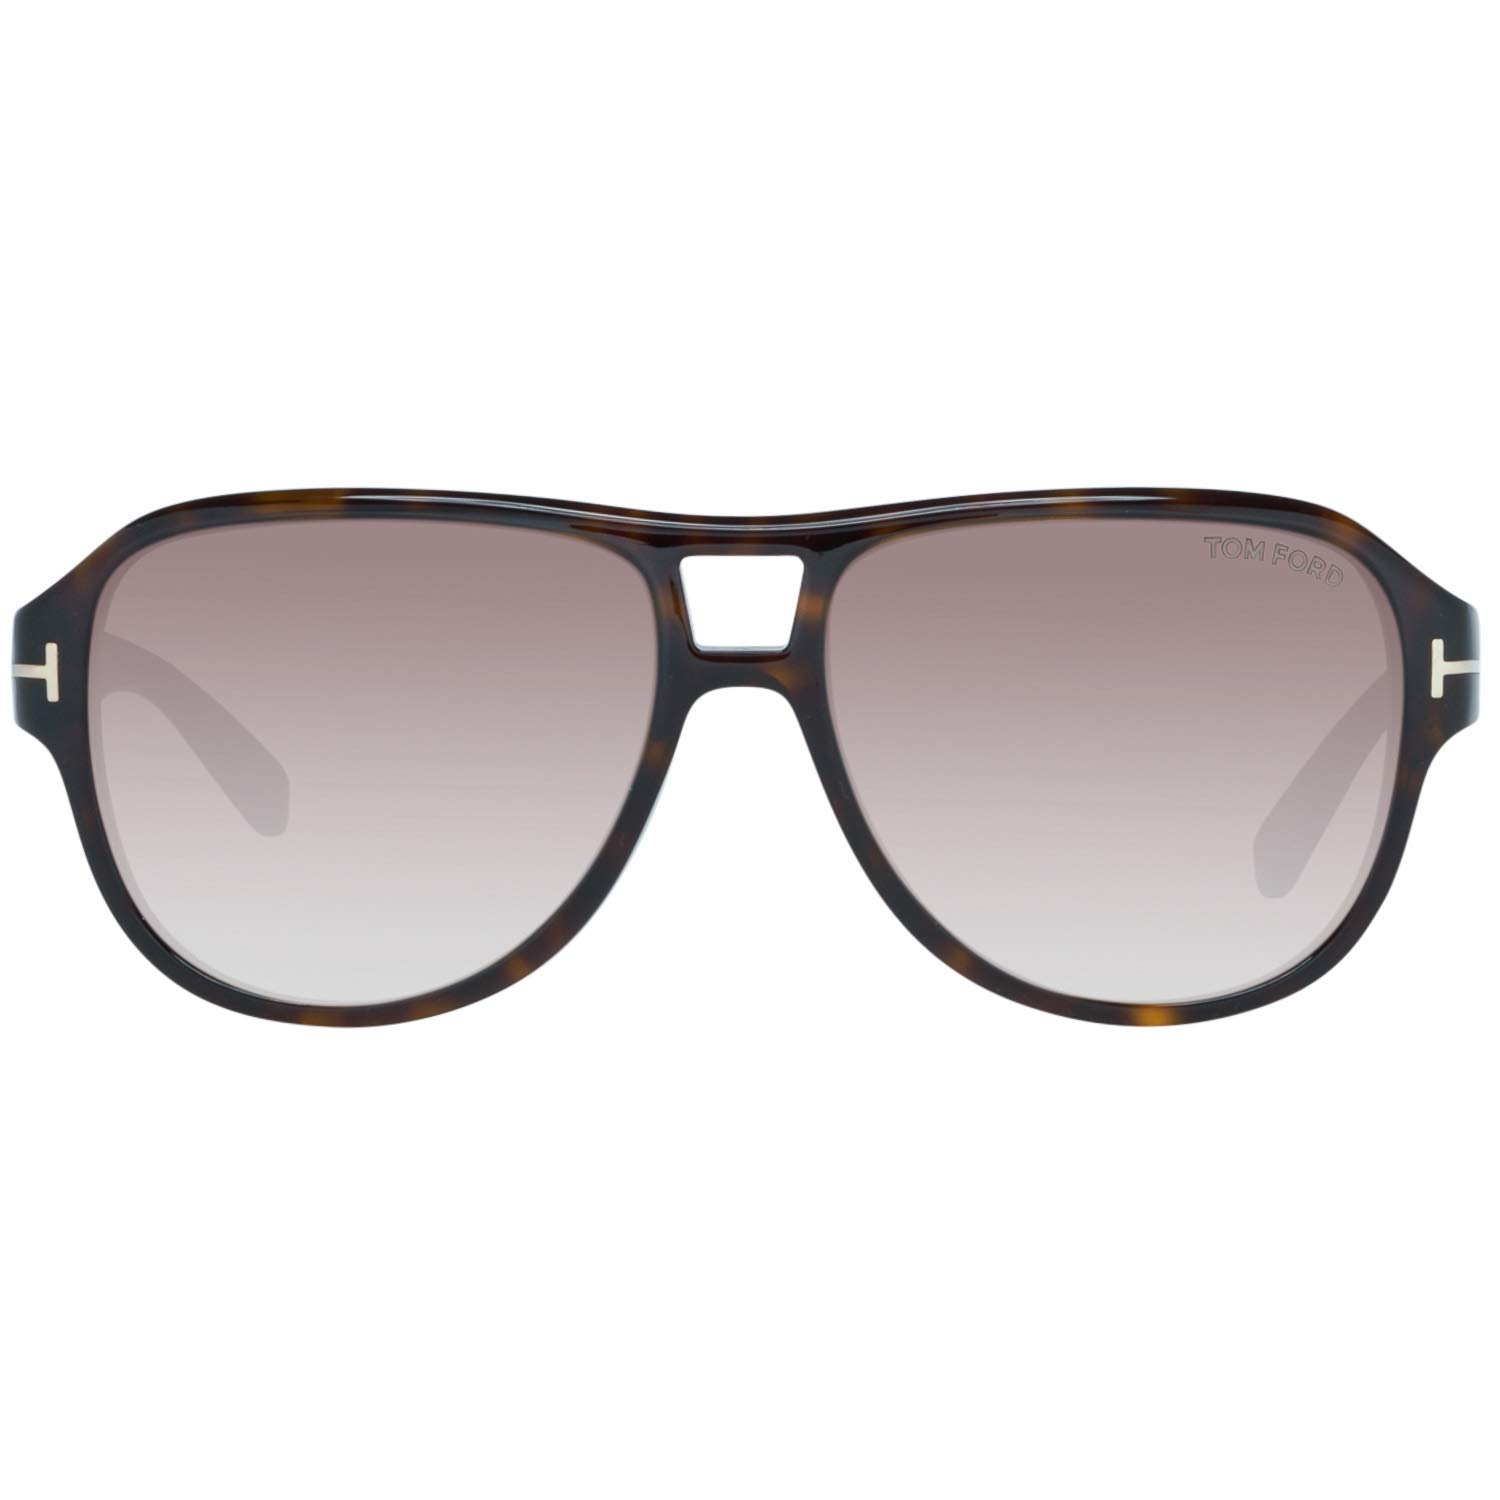 8389e55090a Amazon.com  Tom Ford Sunglasses TF 446 Dylan 52K Havana 57mm  Clothing